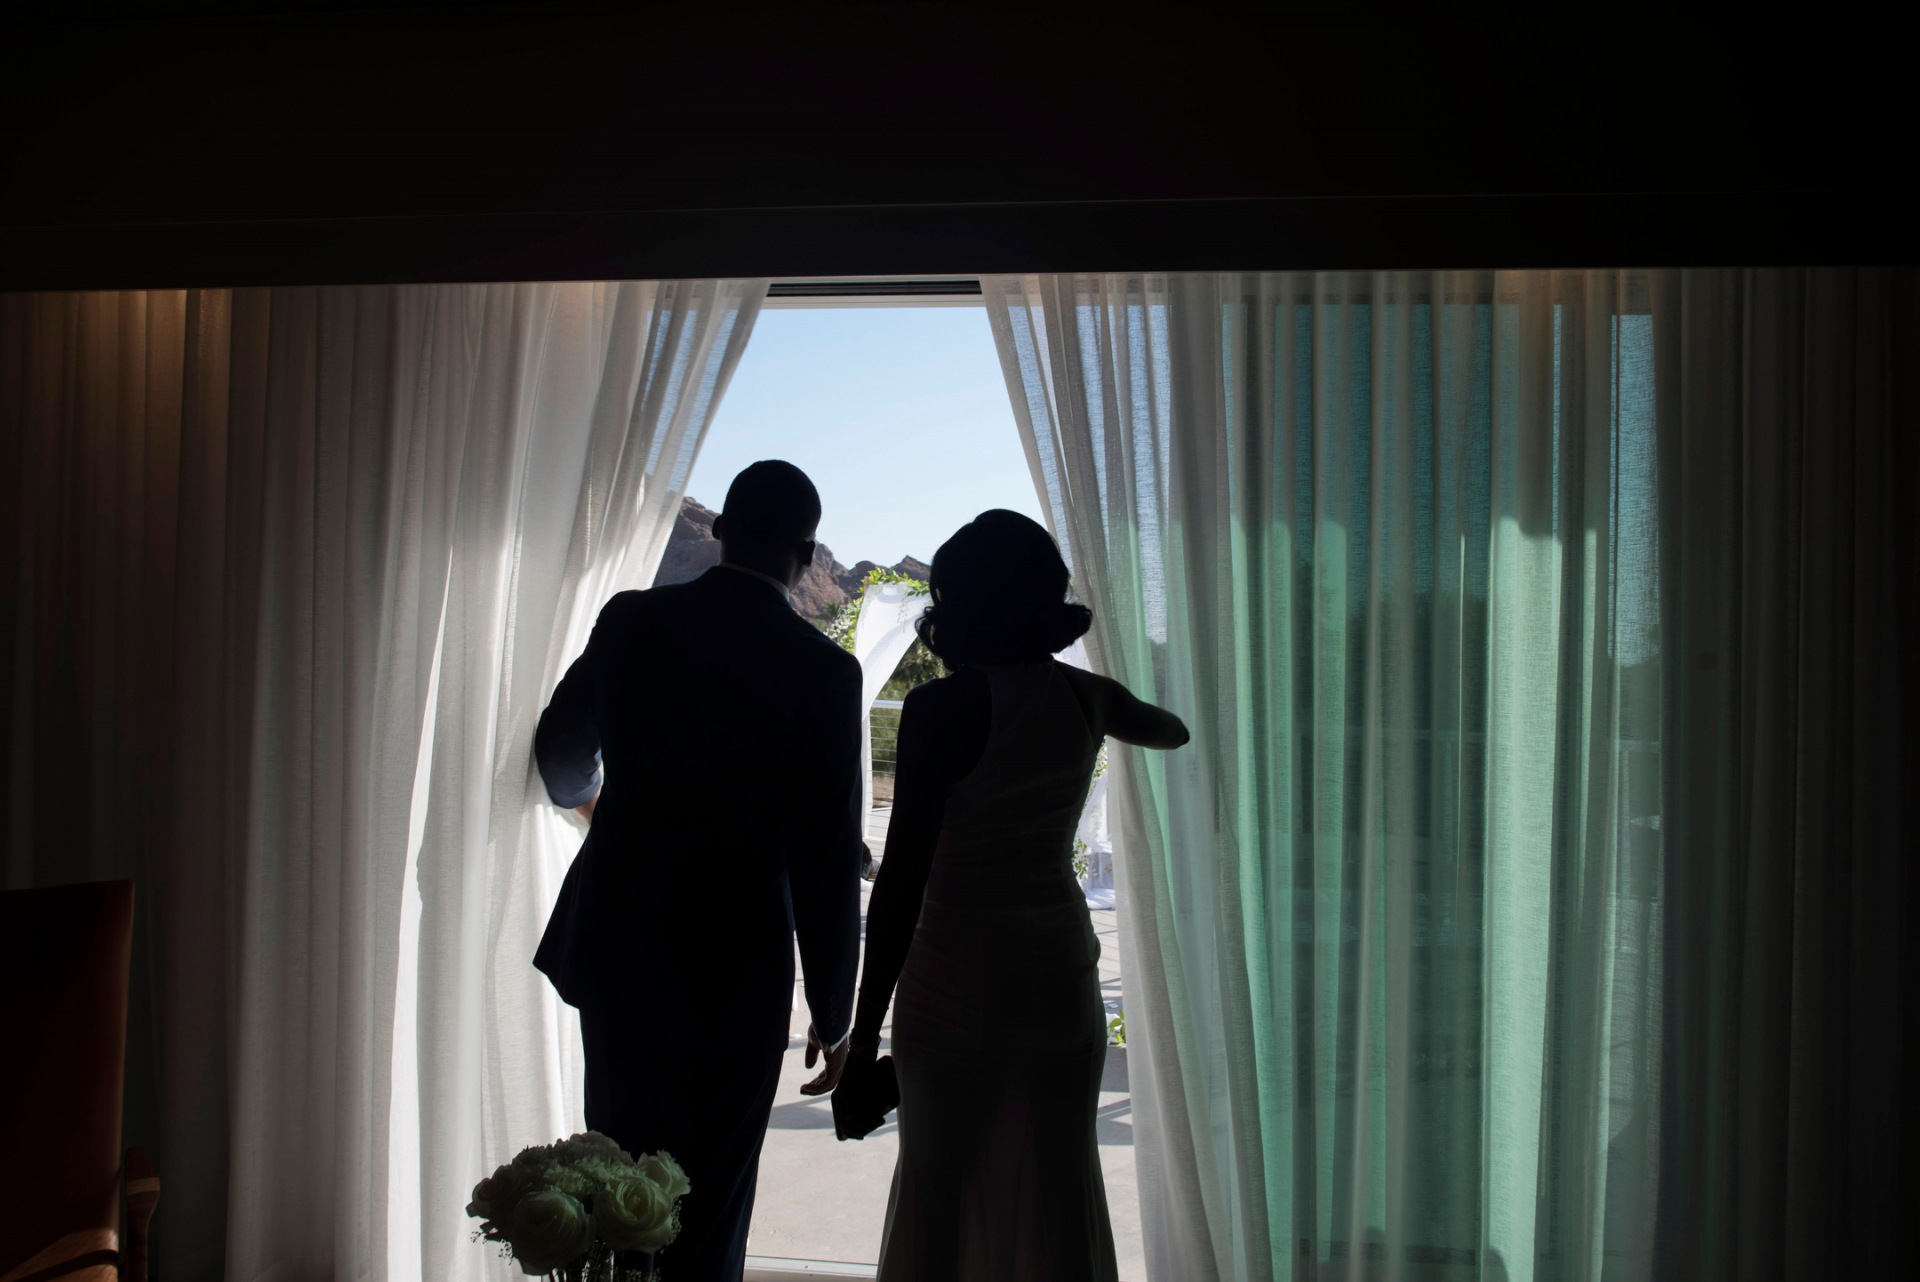 Mountain Shadows Resort Scottsdale Elopement, Arizona Photos | From inside the hotel room, the bride and groom stand together as they look out onto the bright balcony where they are about to be married